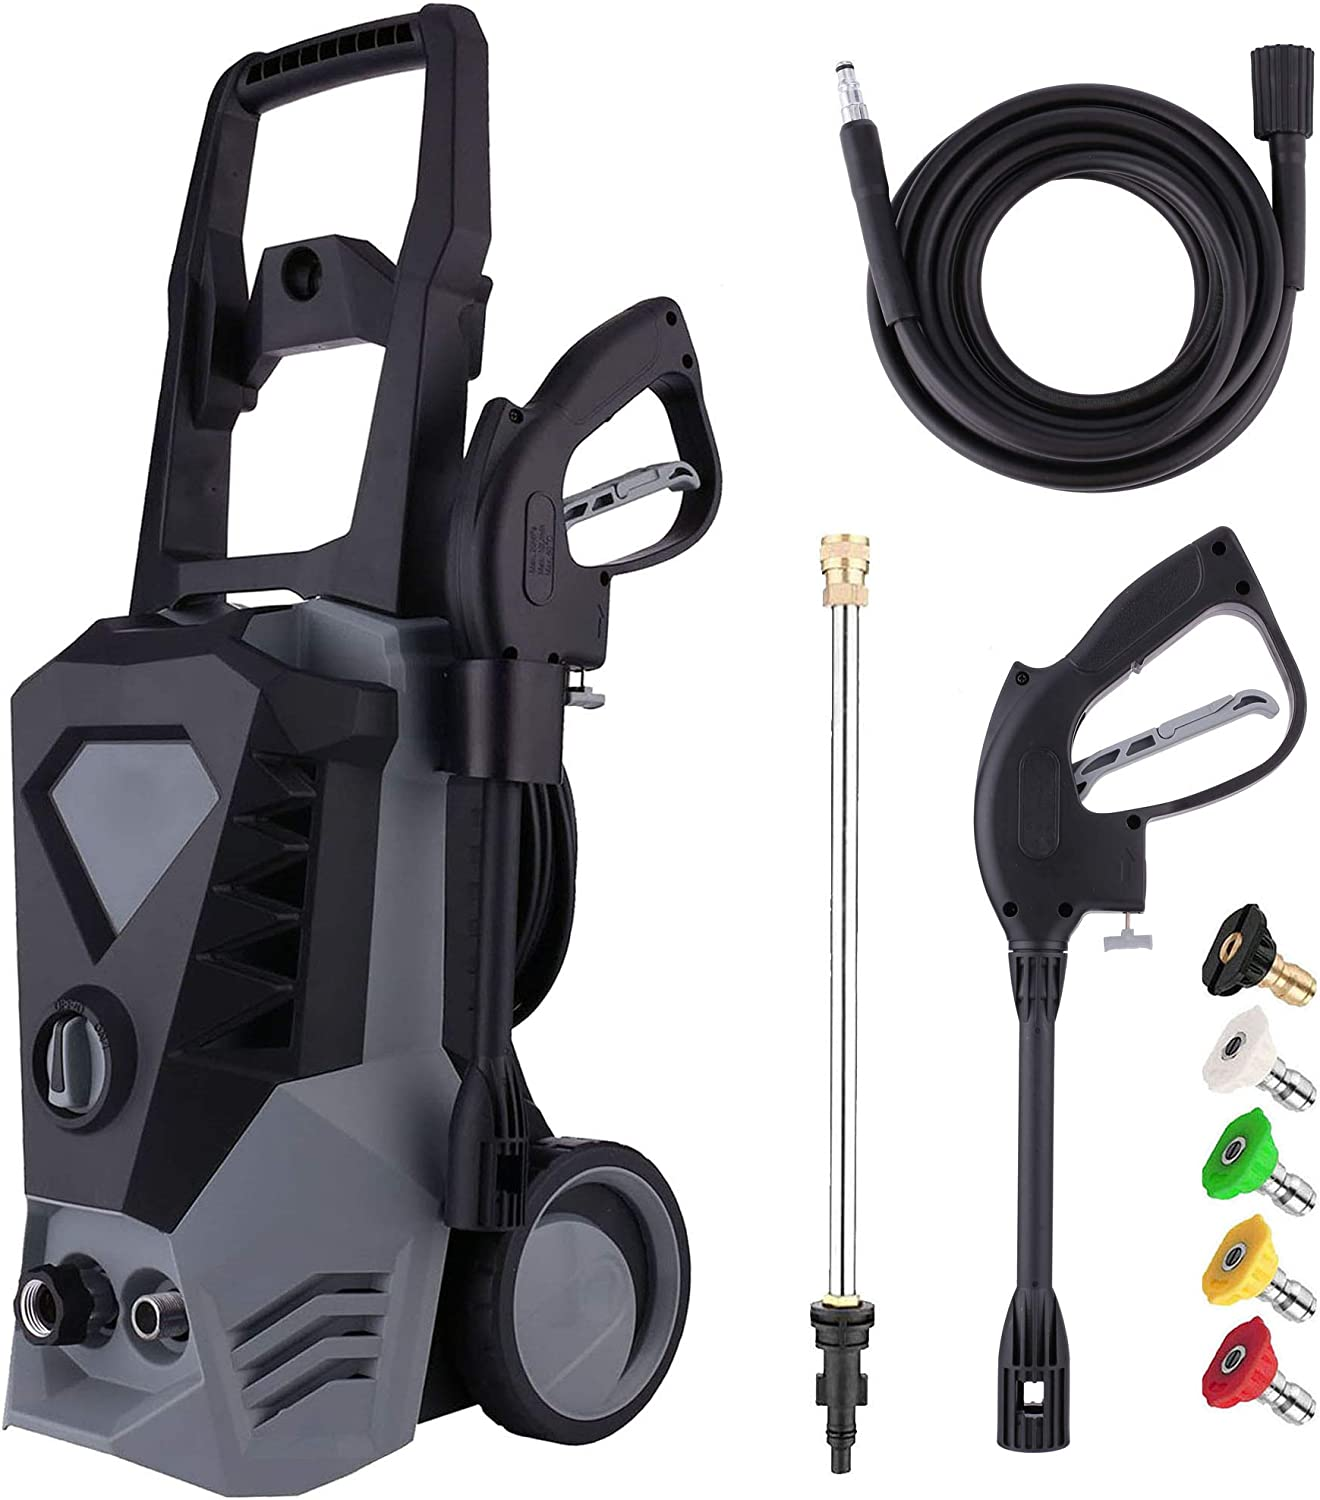 Electric Pressure Washer 3500PSI 2.6GPM High Power Washer with 3